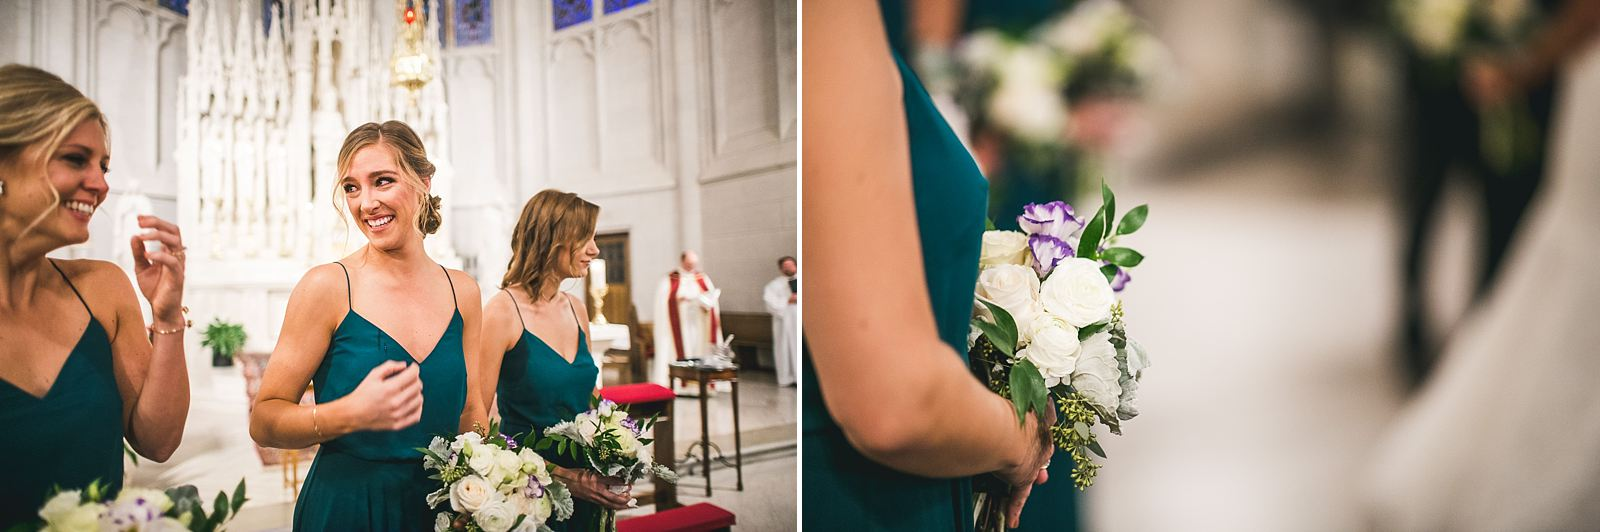 22 wedding photos - Ivy Room Wedding // Audrey + Tyler